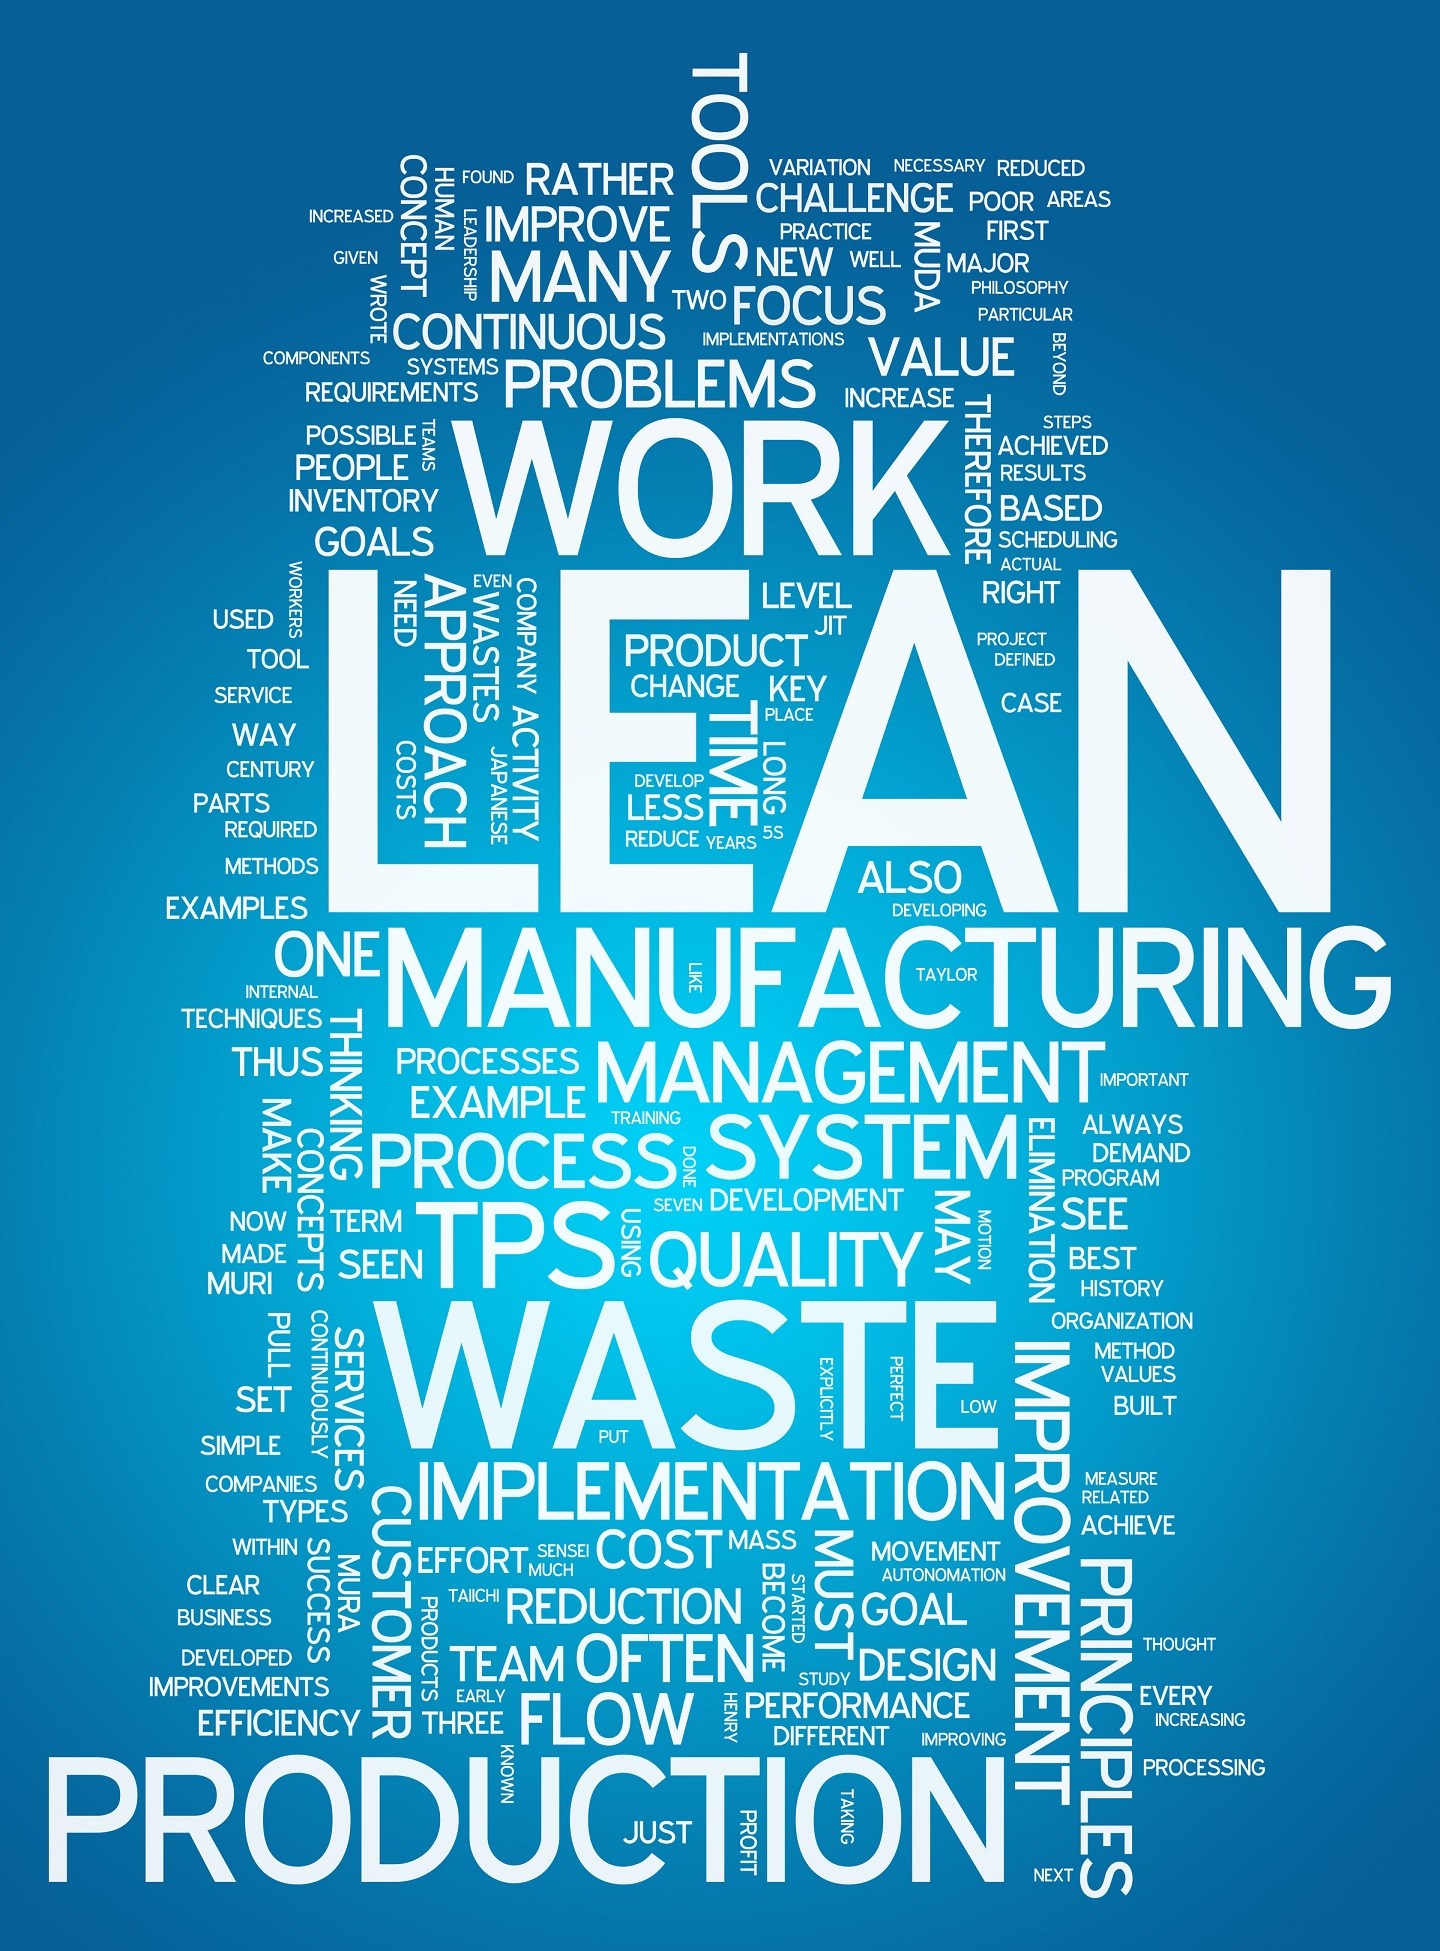 Lean Process Improvement Artac For Investment Amp Developement